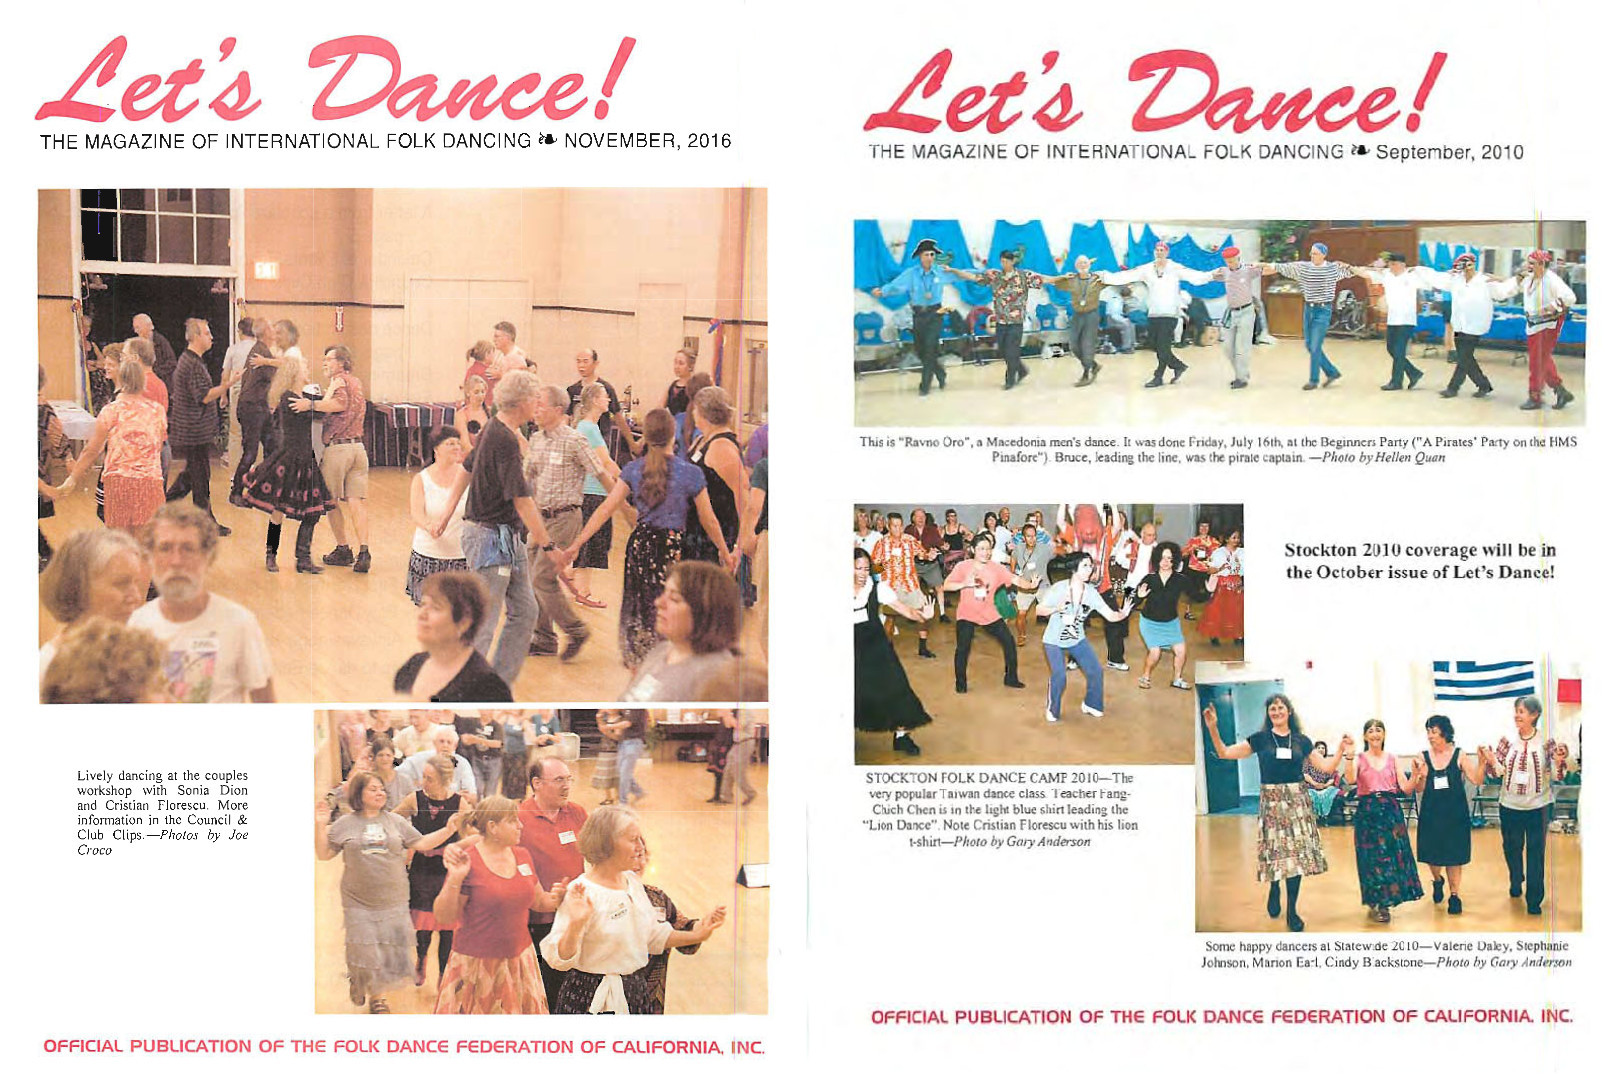 Let's Dance Magazine